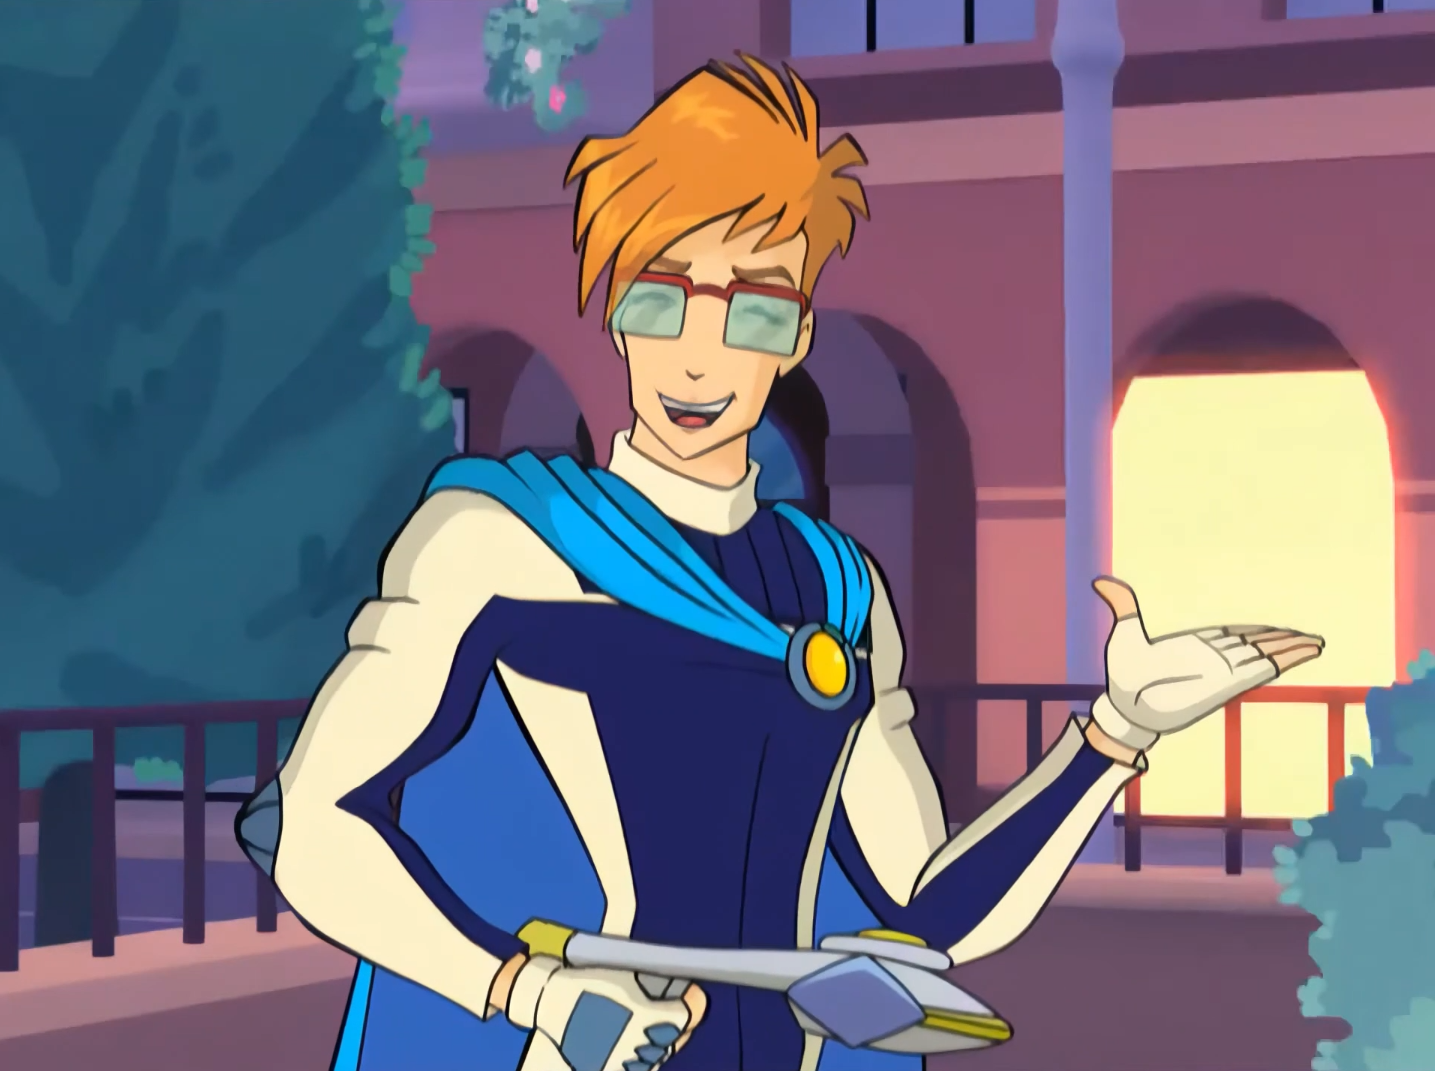 http://static1.wikia.nocookie.net/__cb20110720051917/winx/images/a/ab/TimmyNick.png